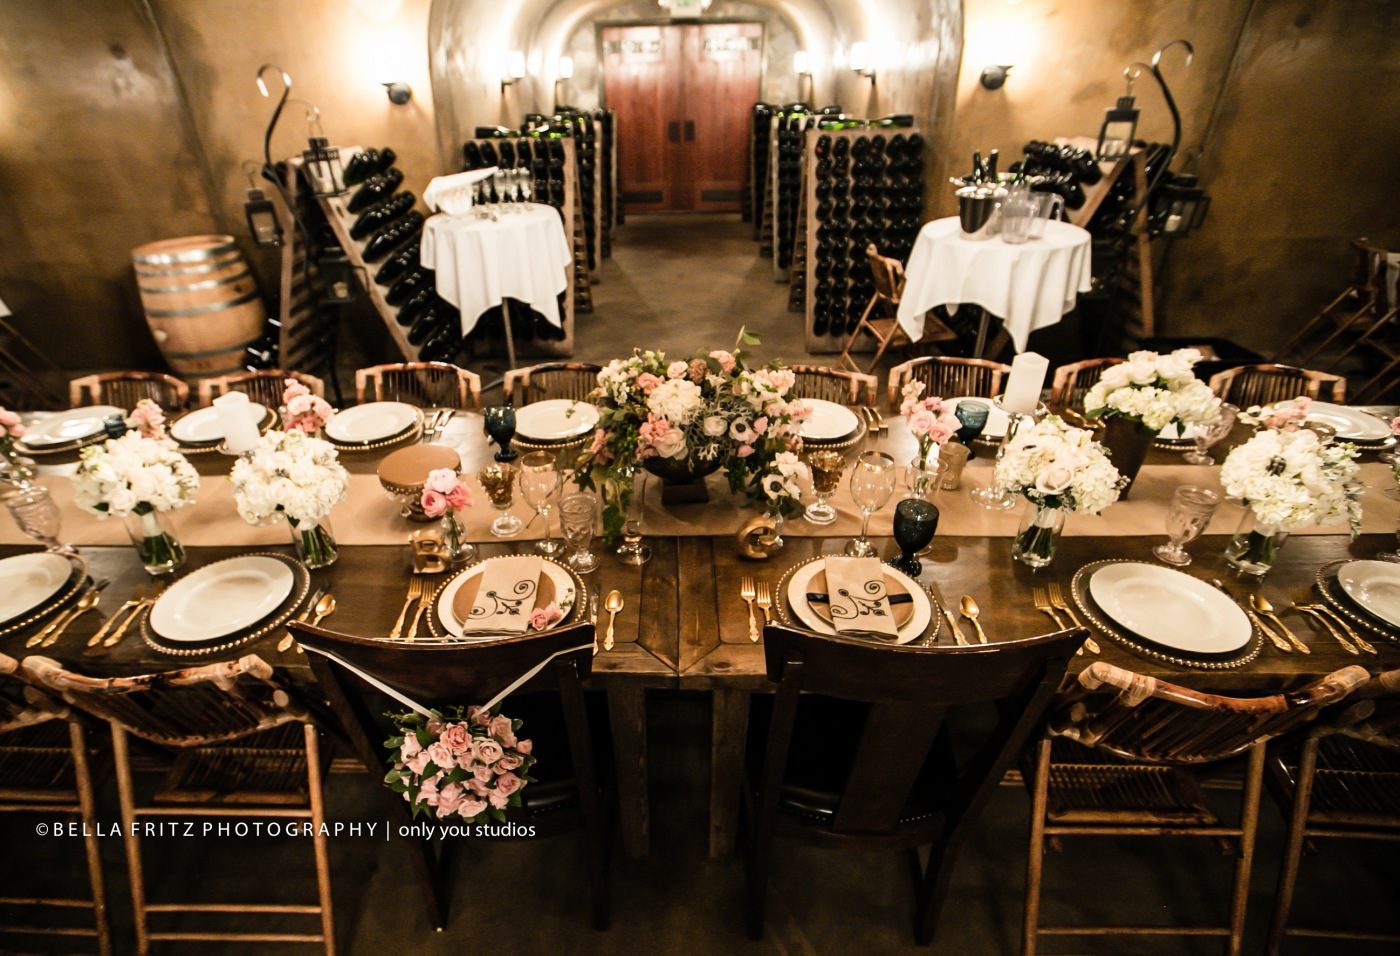 Farm Table | Karma VIneyards wedding | Fleur de lis Floral & Event Design | LakeChelanFlowers.com